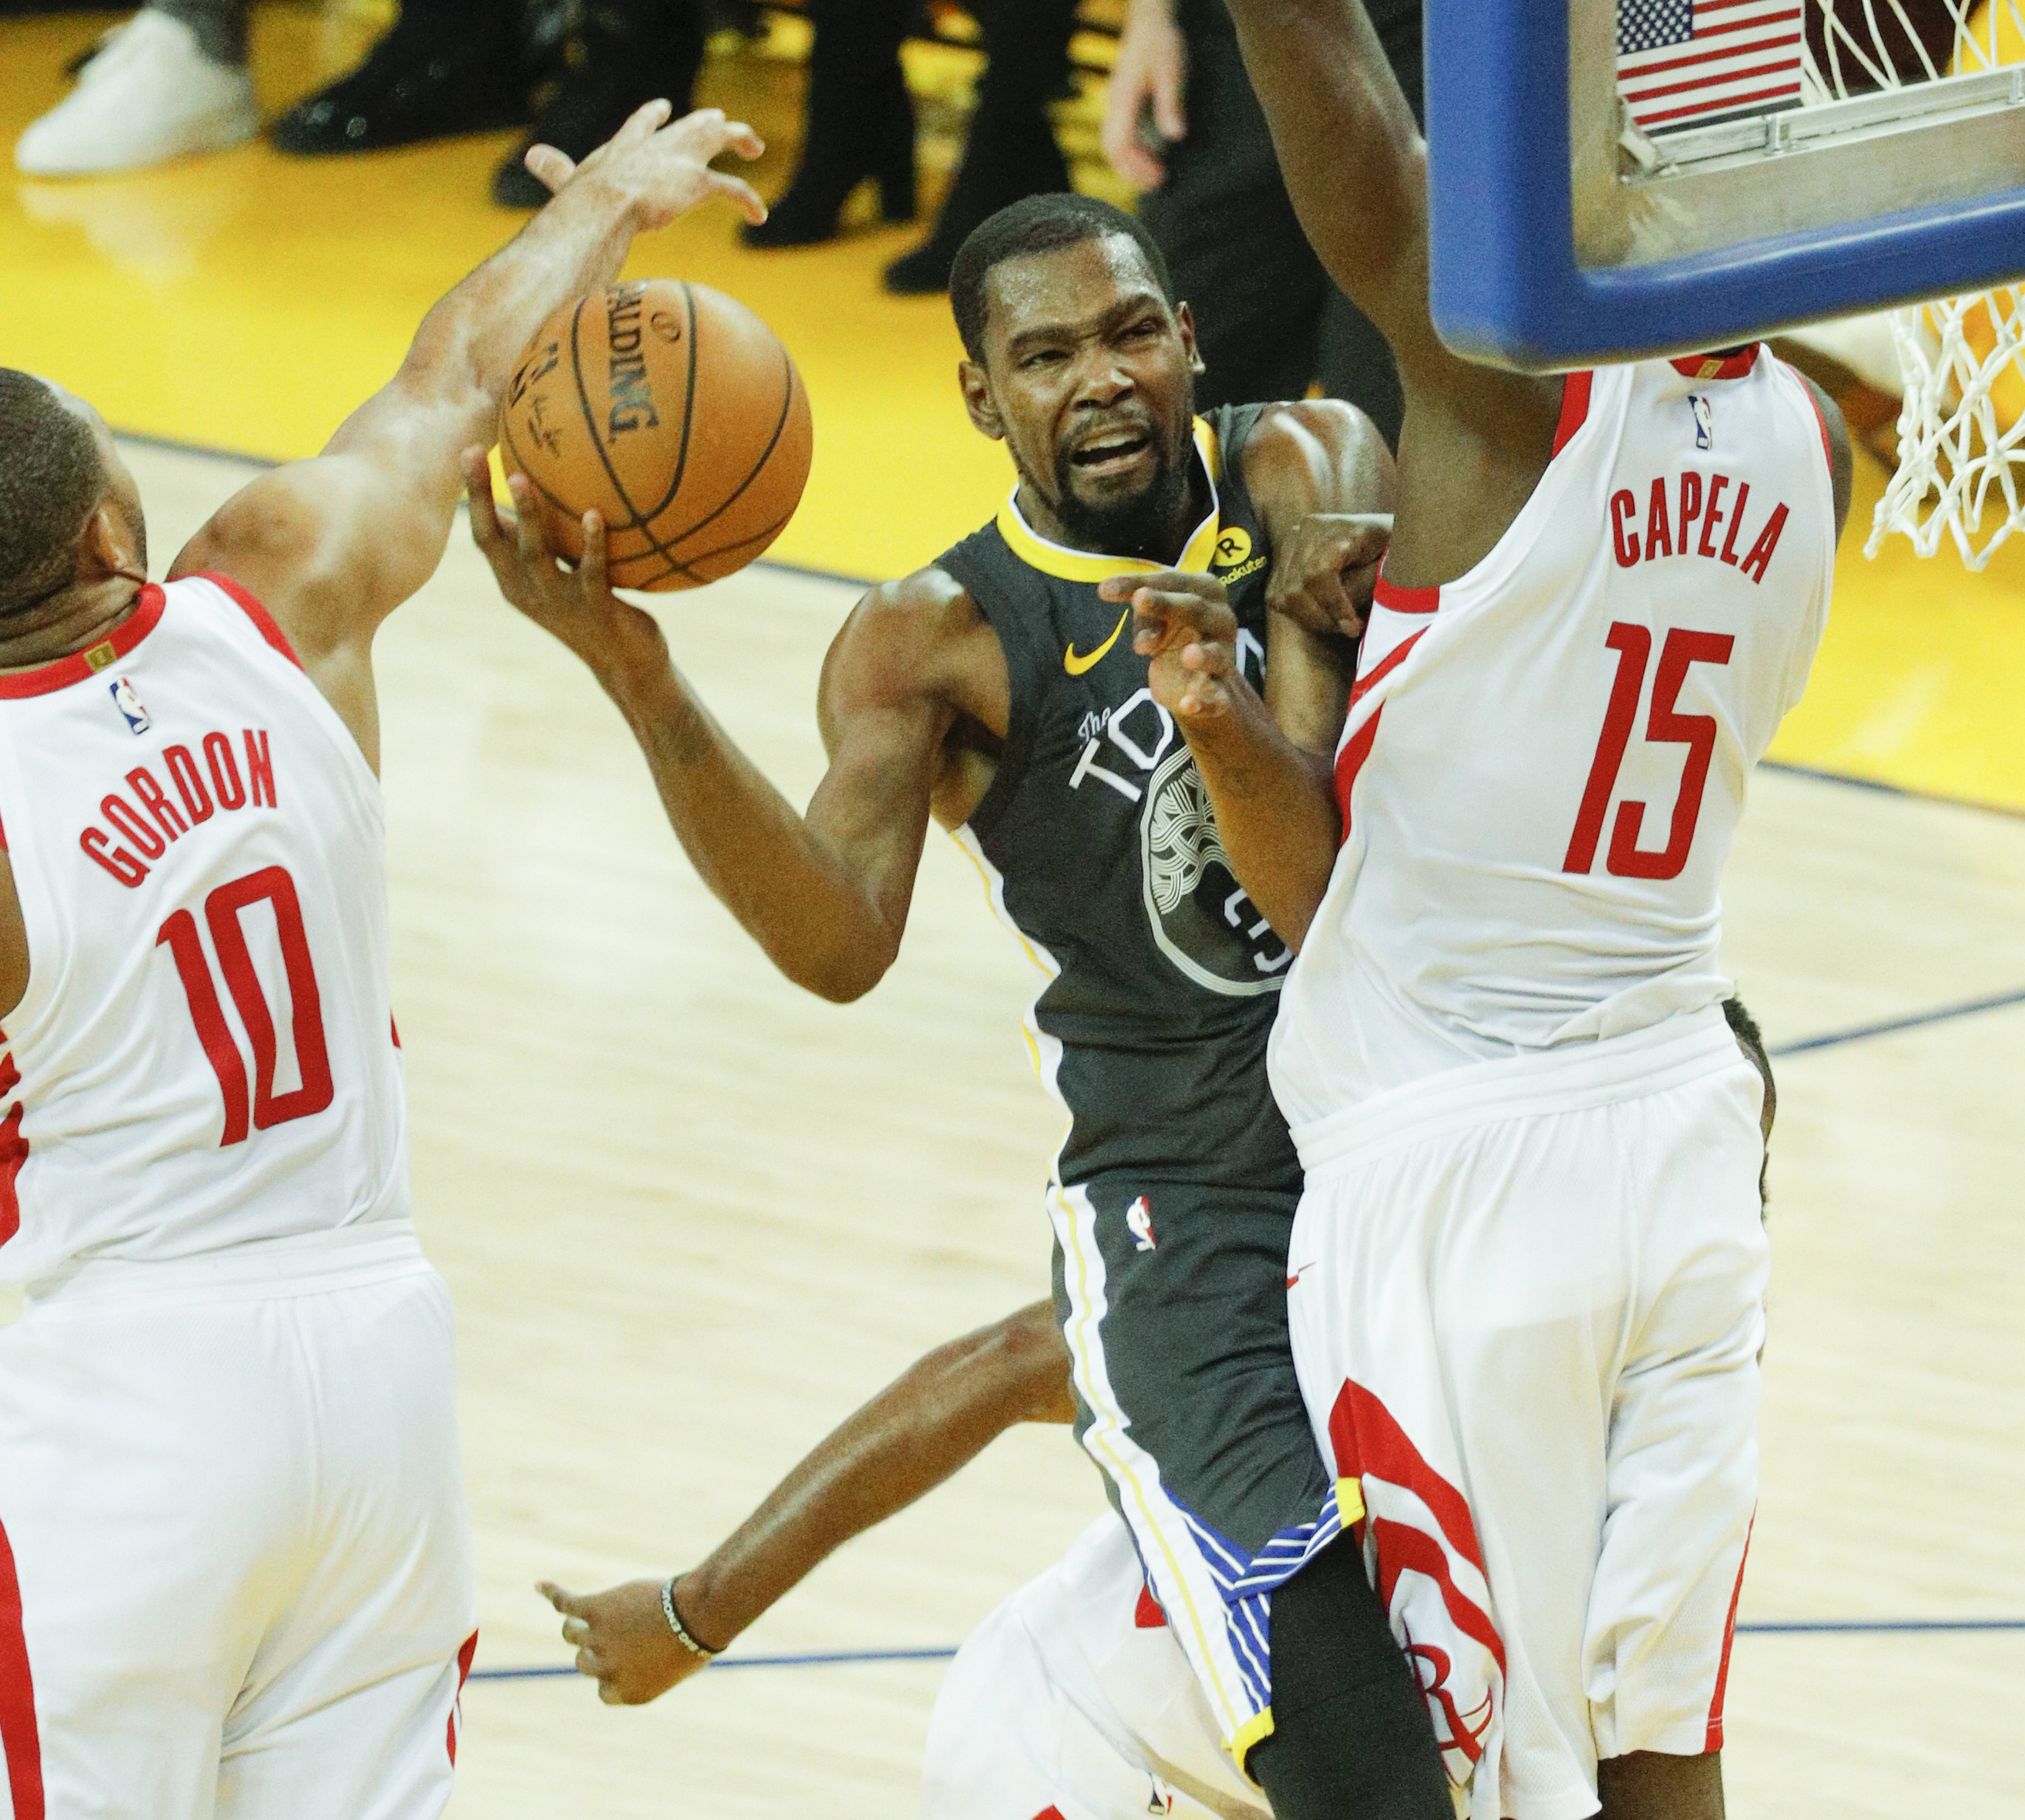 Houston Rockets' Eric Gordon blocks a Golden State Warriors' Kevin Durant layup attempt during game 4 of the Western Conference Finals